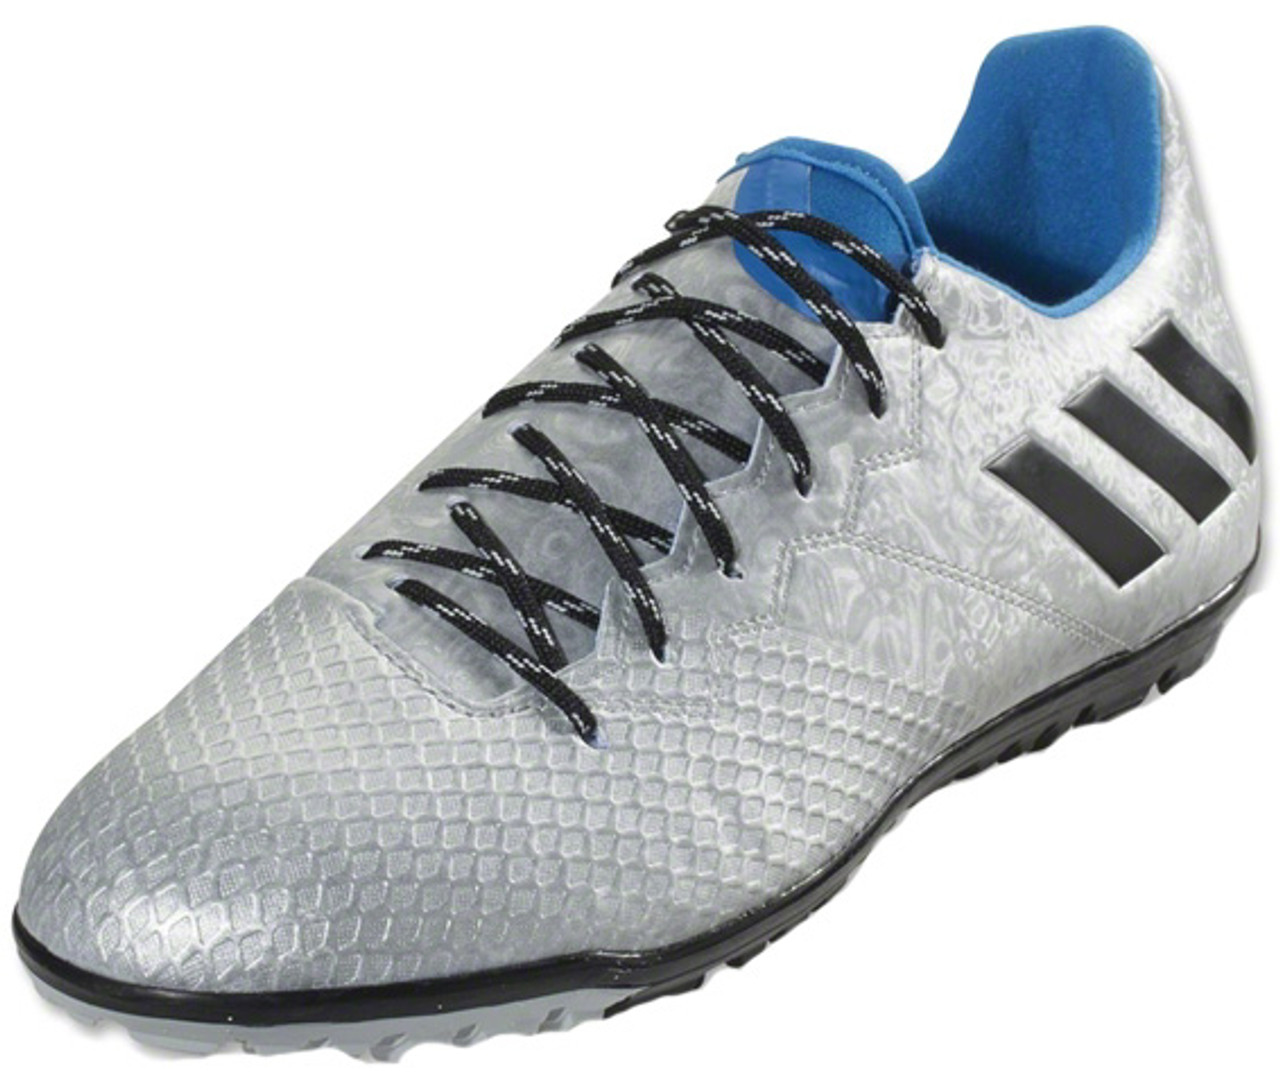 b3d9c163e ADIDAS MESSI 16.3 TF Turf Silver Metallic - Soccer Plus